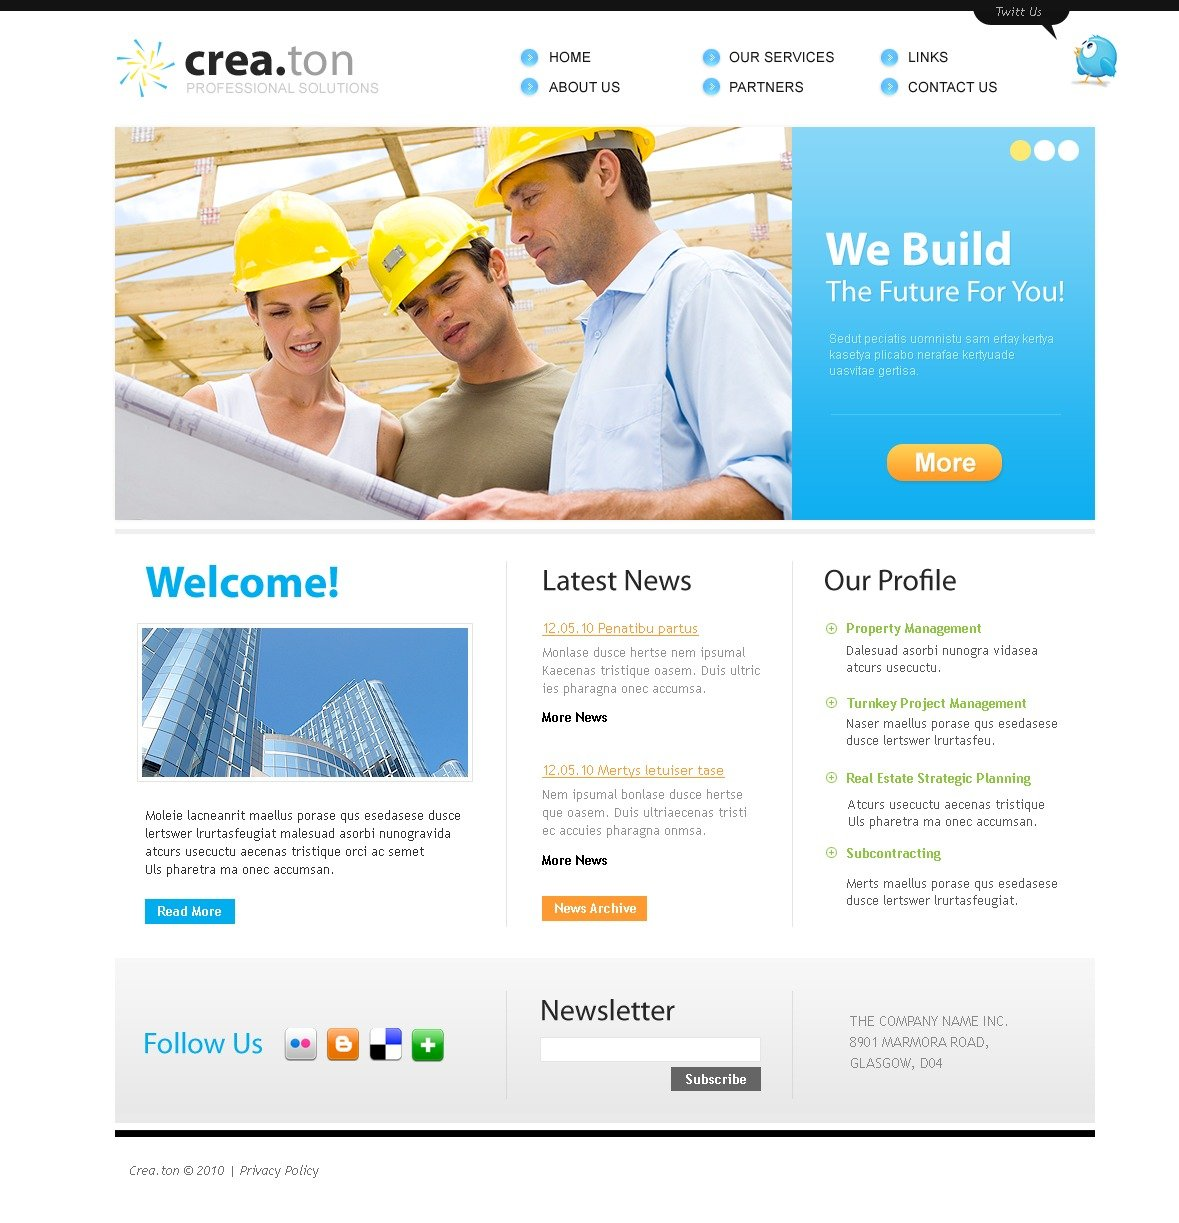 The Crea Ton PSD Design 54329, one of the best PSD templates of its kind (architecture, flash 8, wide), also known as crea ton PSD template, building PSD template, architecture company PSD template, buildings PSD template, technology PSD template, innovation PSD template, skyscrapers PSD template, projects PSD template, constructions PSD template, houses PSD template, work PSD template, team PSD template, strategy PSD template, services PSD template, support PSD template, planning solutions design PSD template, non-standard PSD template, creative ideas PSD template, catalogue PSD template, windows PSD template, doors PSD template, equipme and related with crea ton, building, architecture company, buildings, technology, innovation, skyscrapers, projects, constructions, houses, work, team, strategy, services, support, planning solutions design, non-standard, creative ideas, catalogue, windows, doors, equipme, etc.